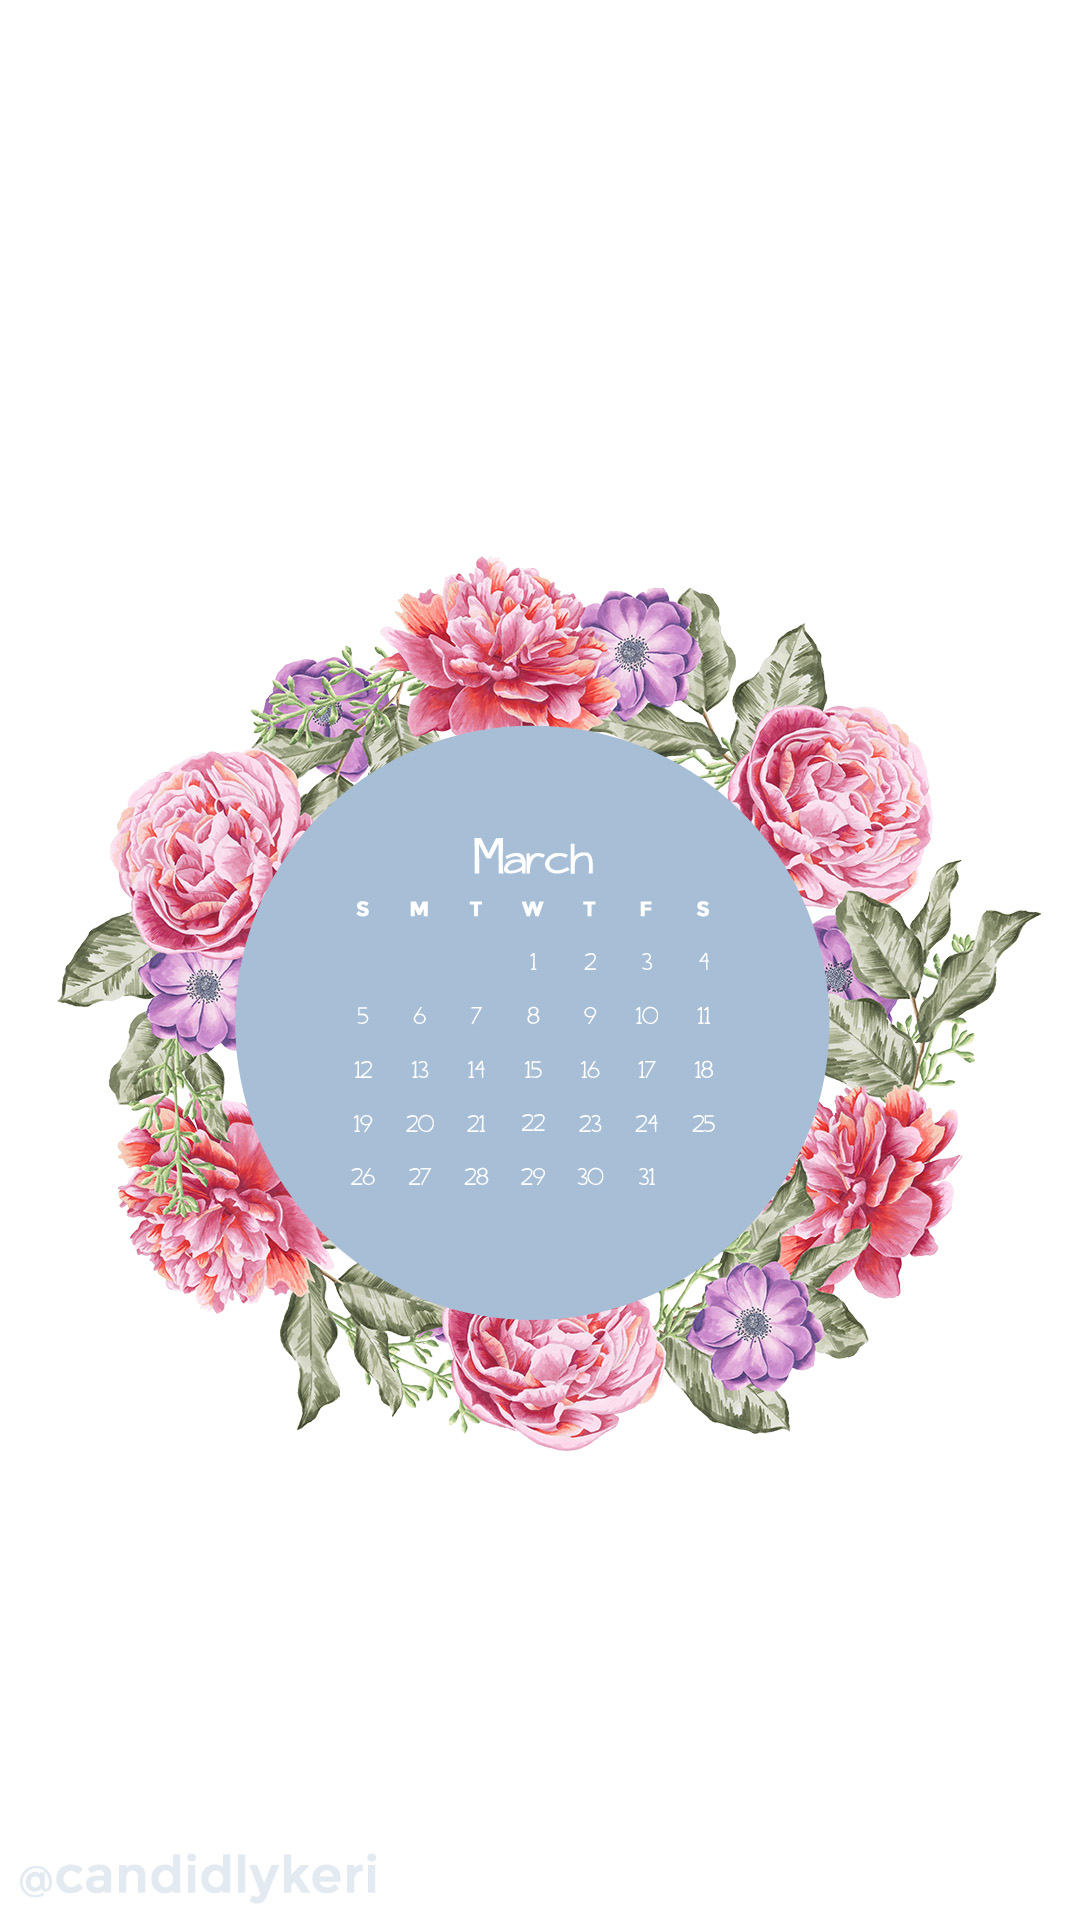 Flower-Crown-pink-flower-March-calendar-you-can-download-for-free-on-the-blog-For-an-wallpaper-wp3605643